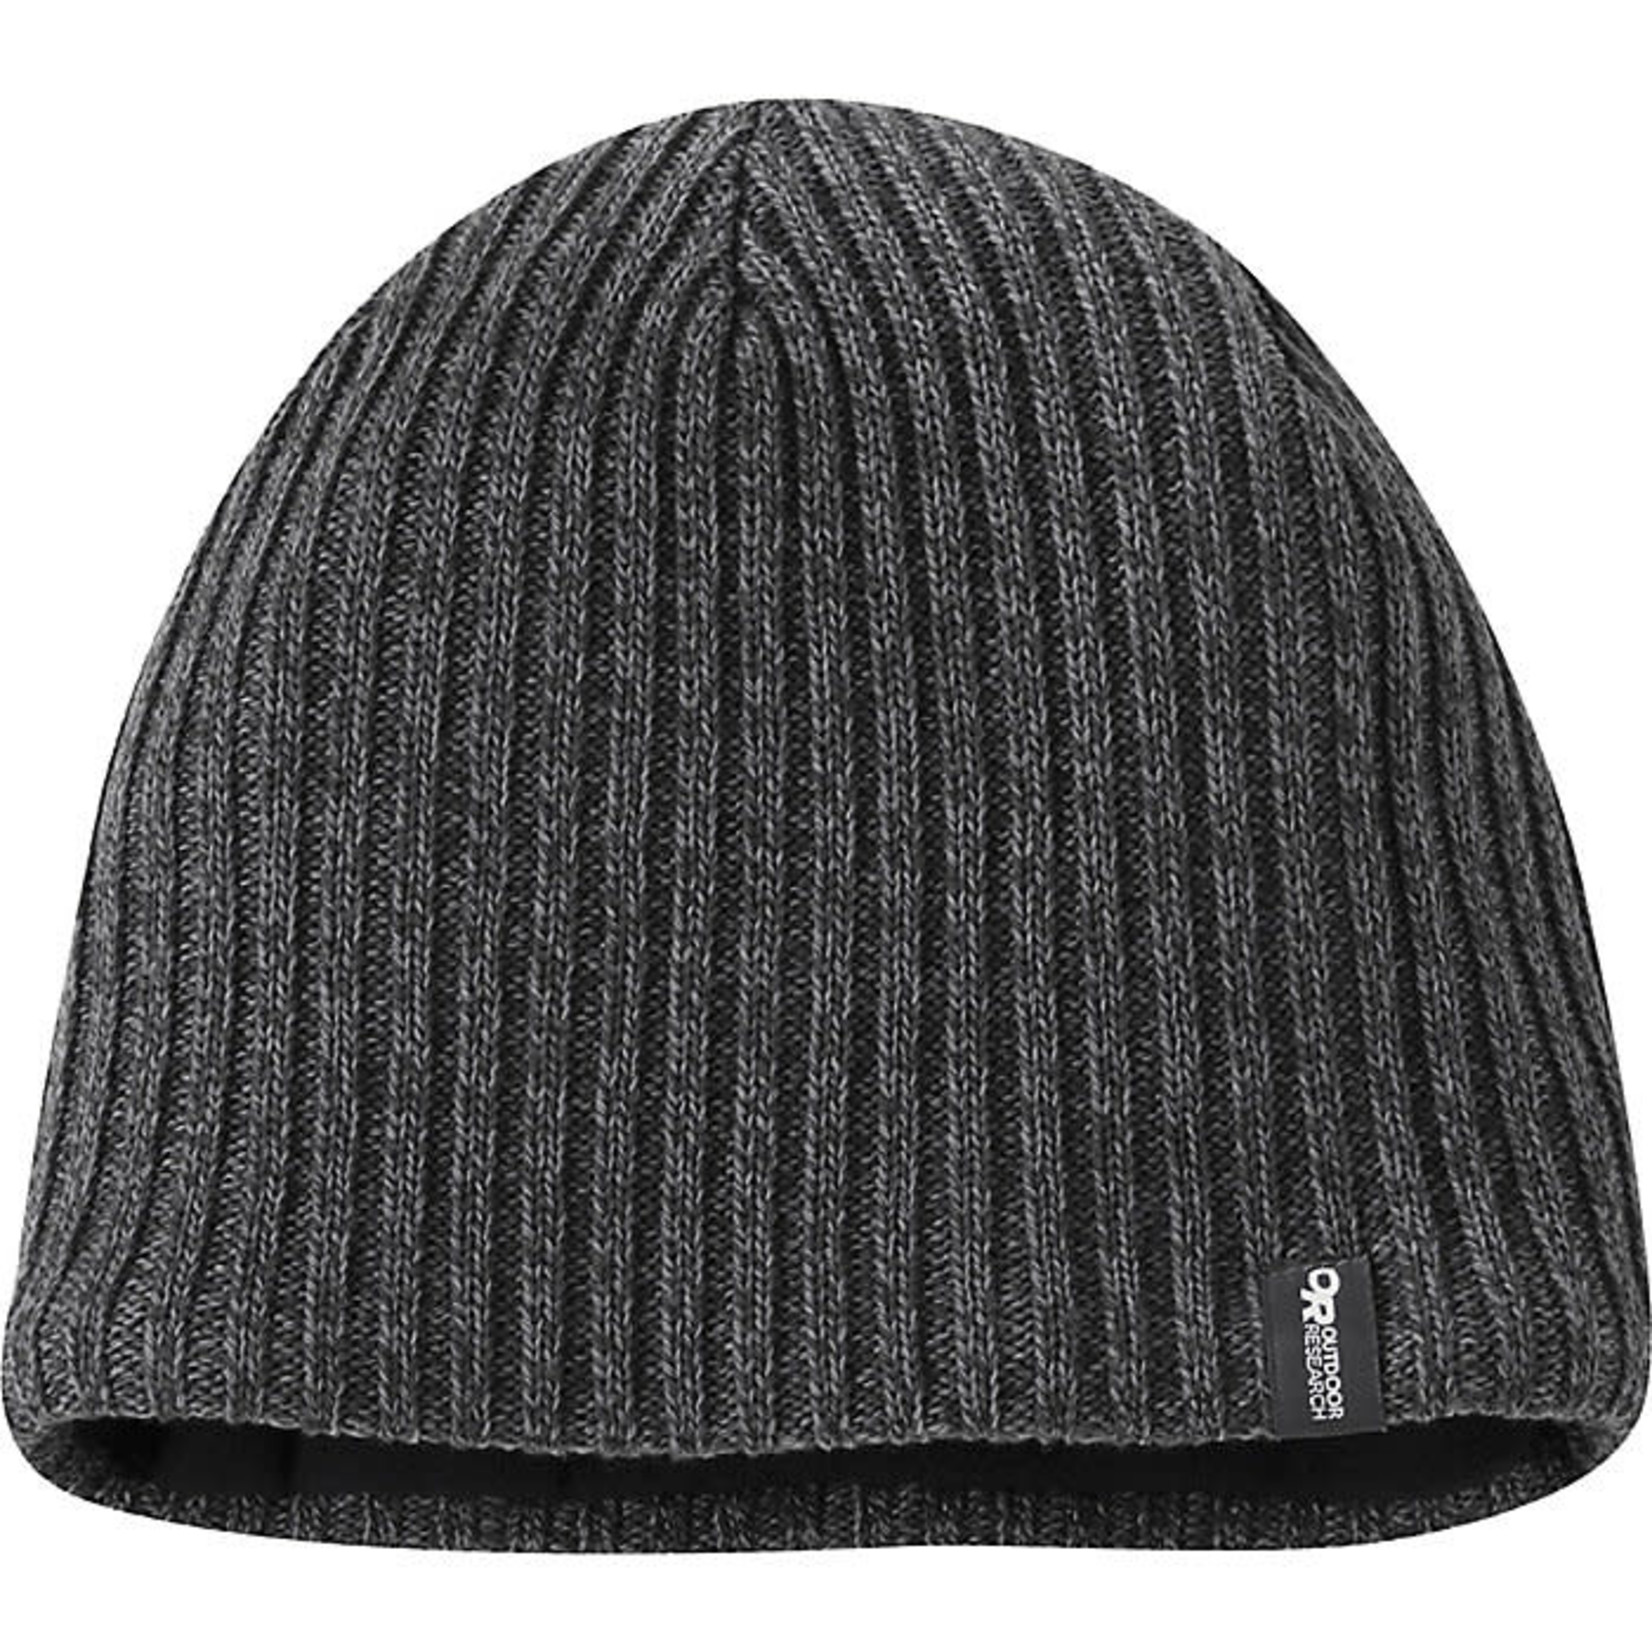 Outdoor Research Outdoor Research Bennie Insulated Beanie Pewter/Charcalo